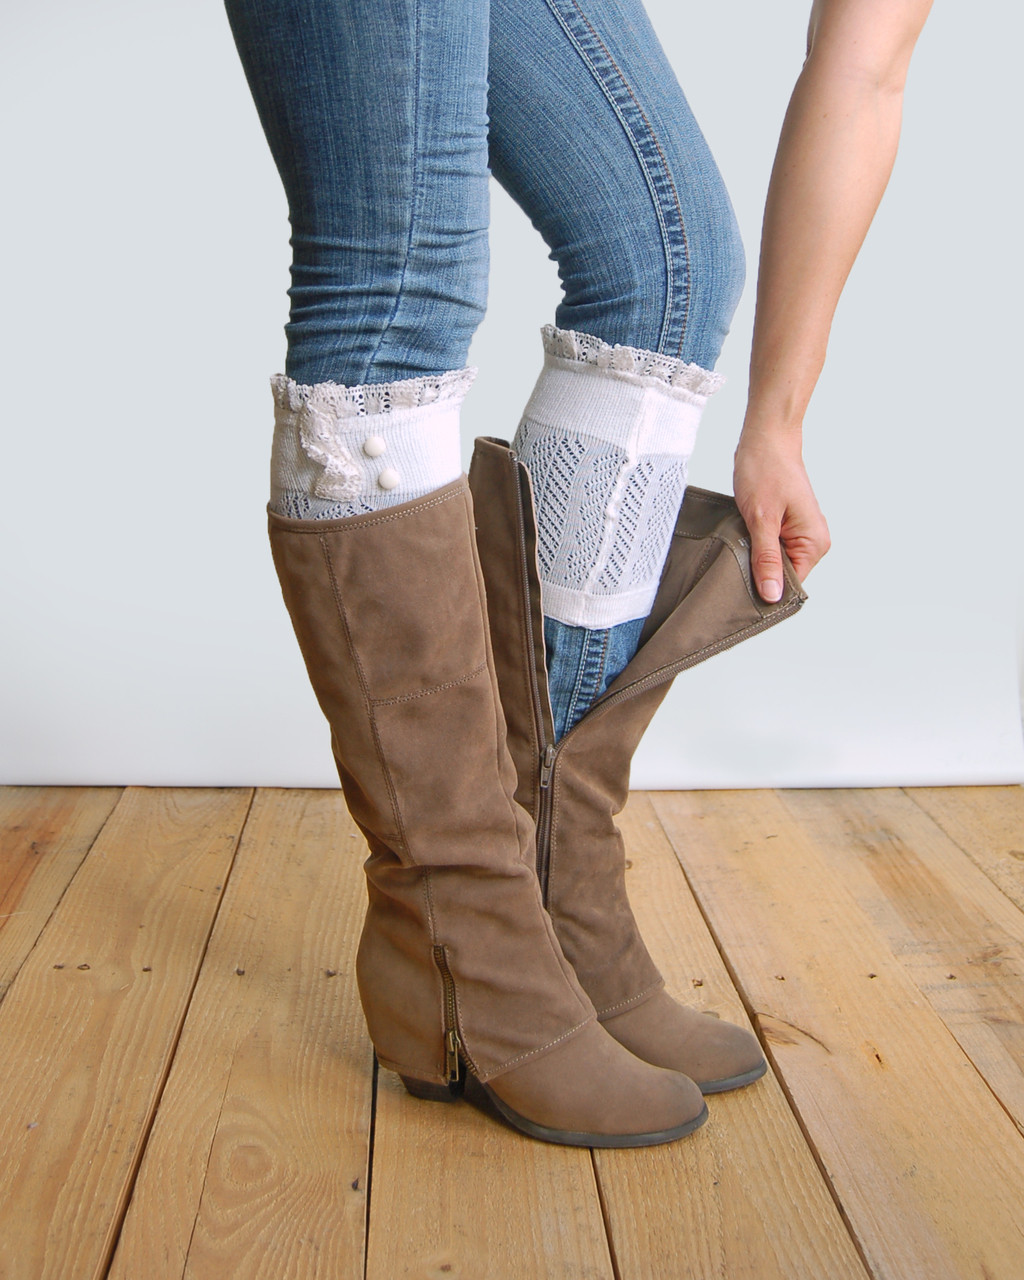 Beautiful Grace and Lace Boot Cuffs as Seen Shark Tank Boot Lace Boot Cuffs Of Awesome 50 Pictures Lace Boot Cuffs